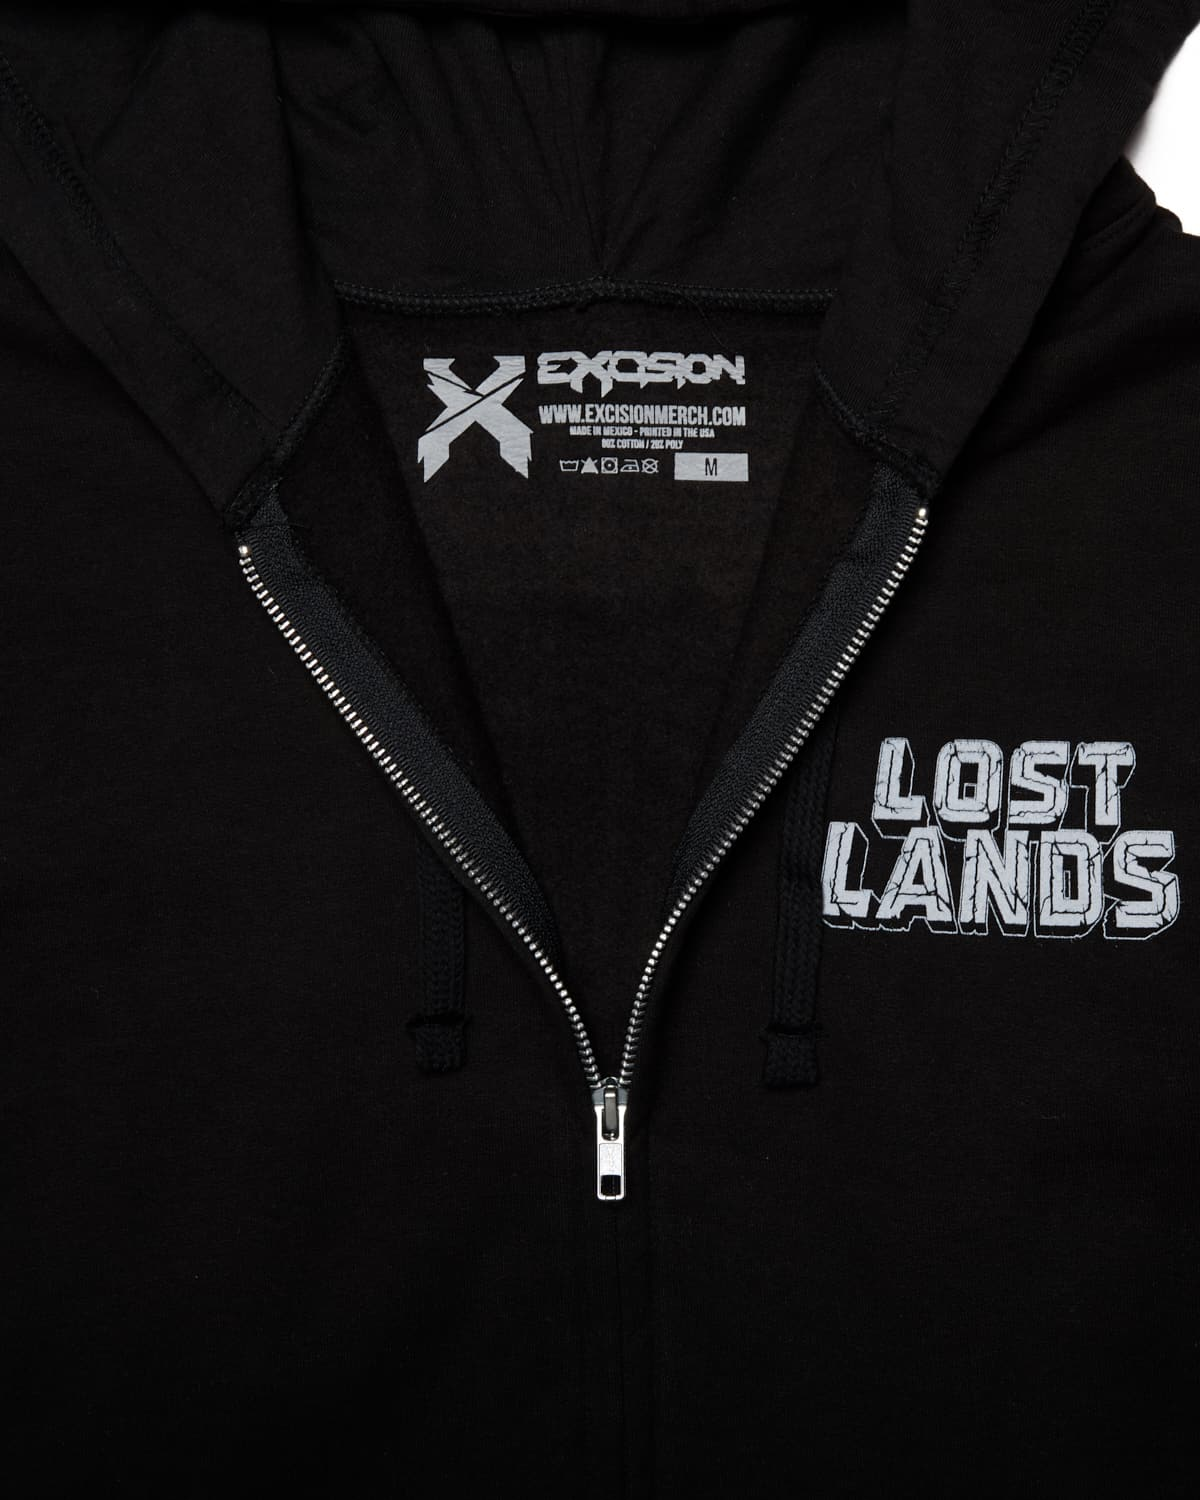 Lost Lands 2018 Lineup Full-Zip Hoodie - Black/White